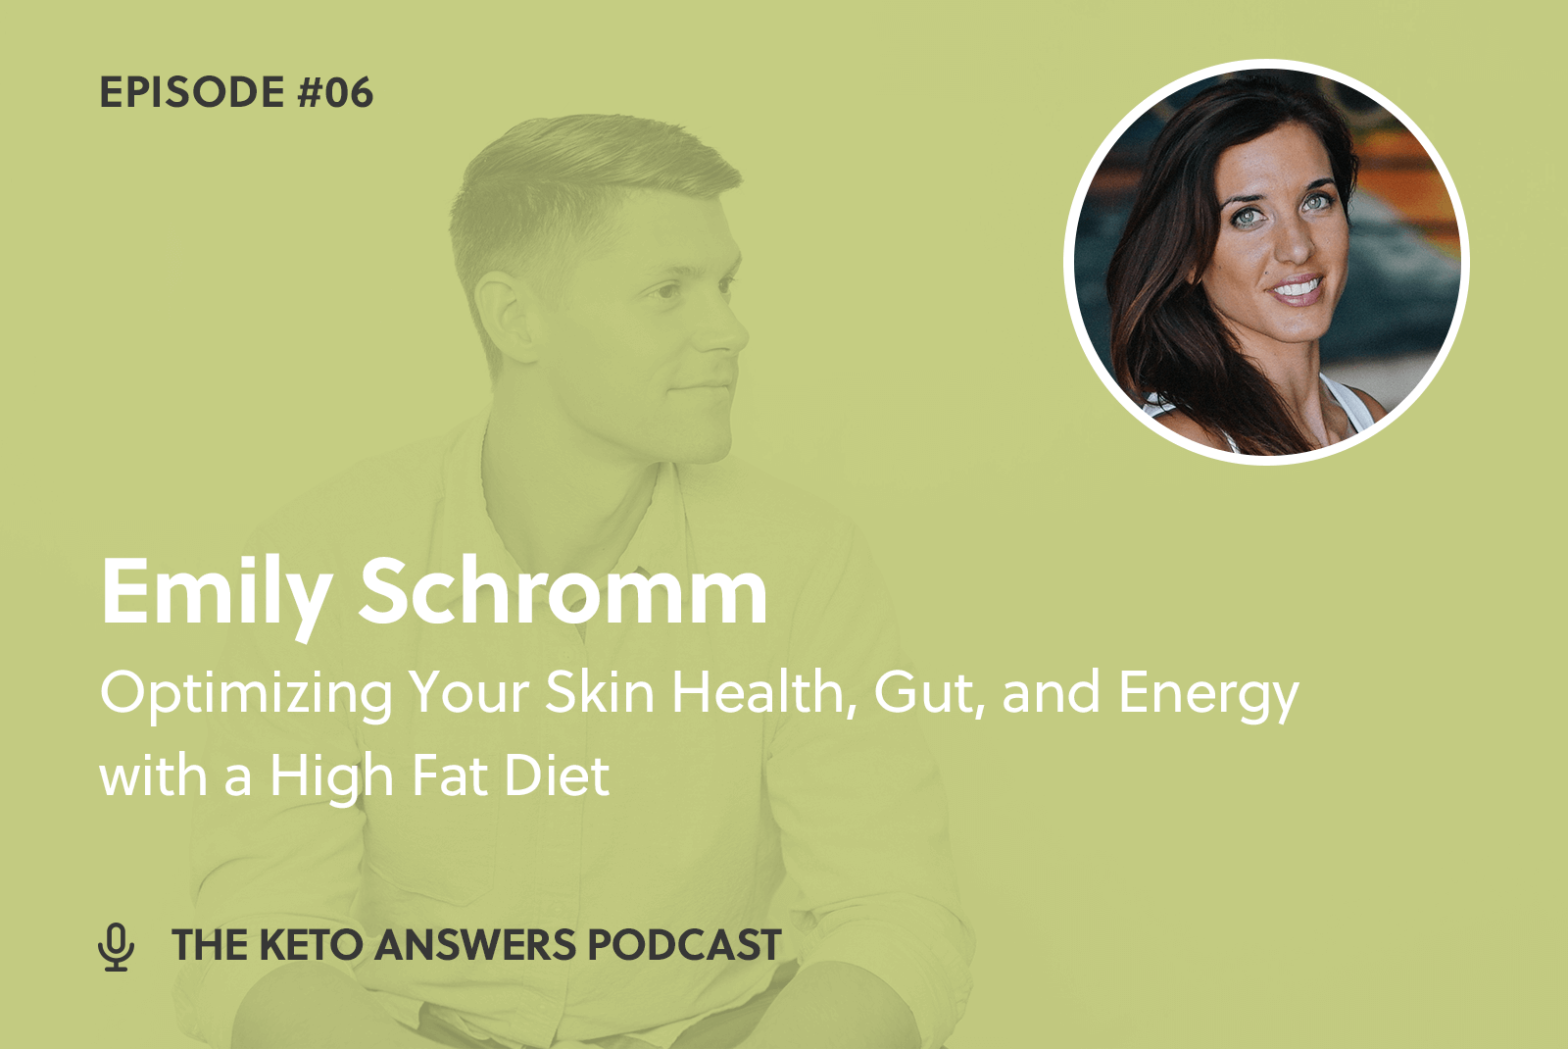 006: Optimizing Your Skin Health, Gut, and Energy with a High Fat Diet – Emily Schromm